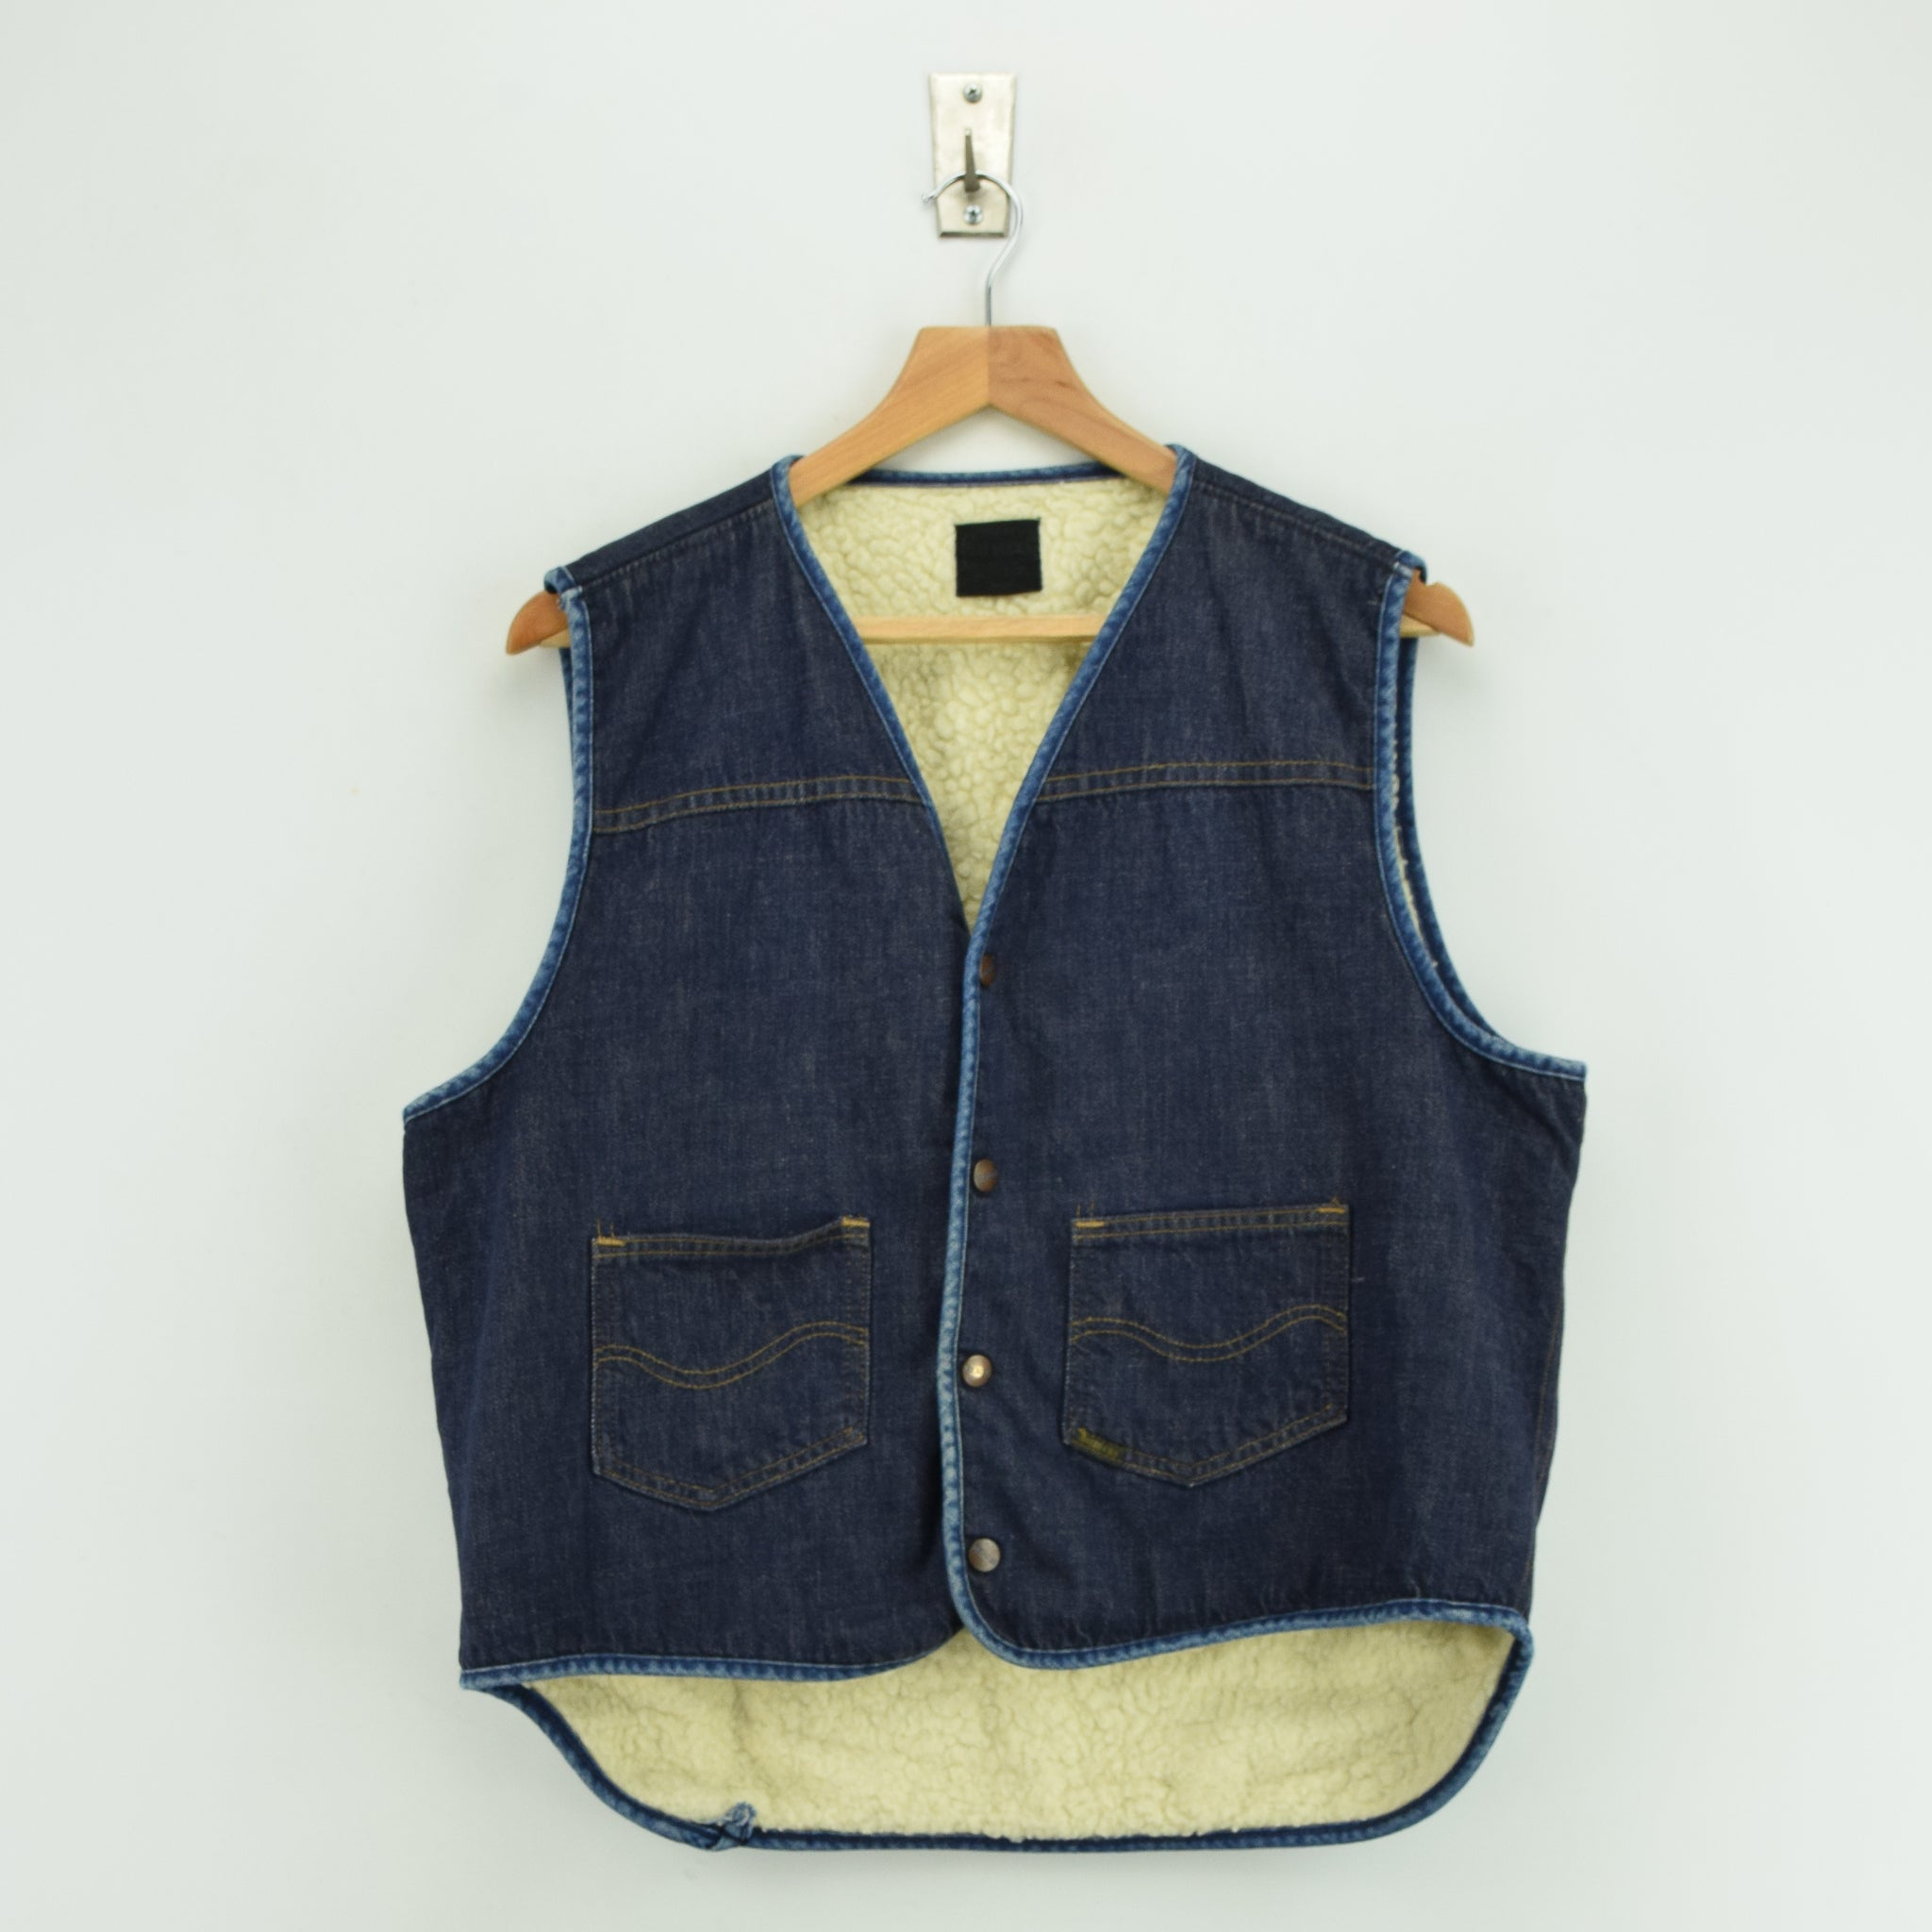 Vintage Sears Roebucks Blue Gilet Cotton Denim Waistcoat Vest Made in USA L front